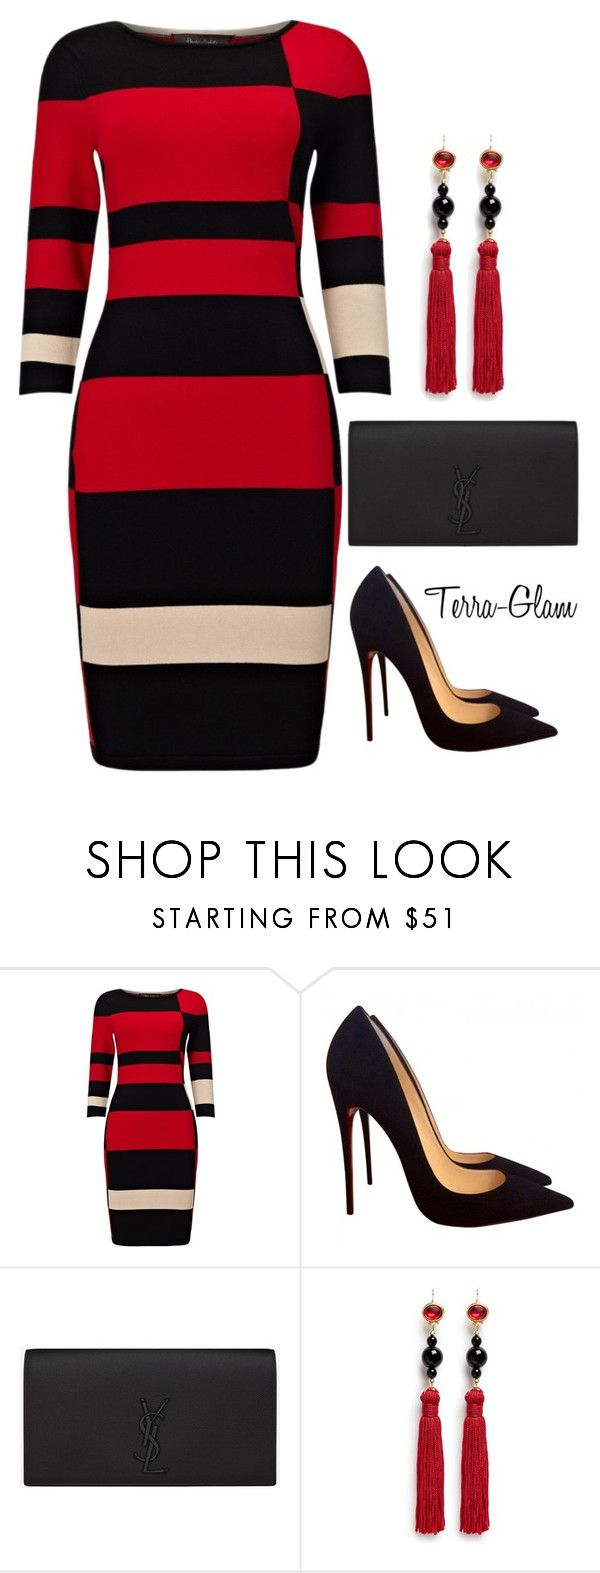 """Red & Black Delight"" by terra-glam ❤ liked on Polyvore featuring Phase Eight, Christian Louboutin, Yves Saint Laurent and Kenneth Jay Lane"